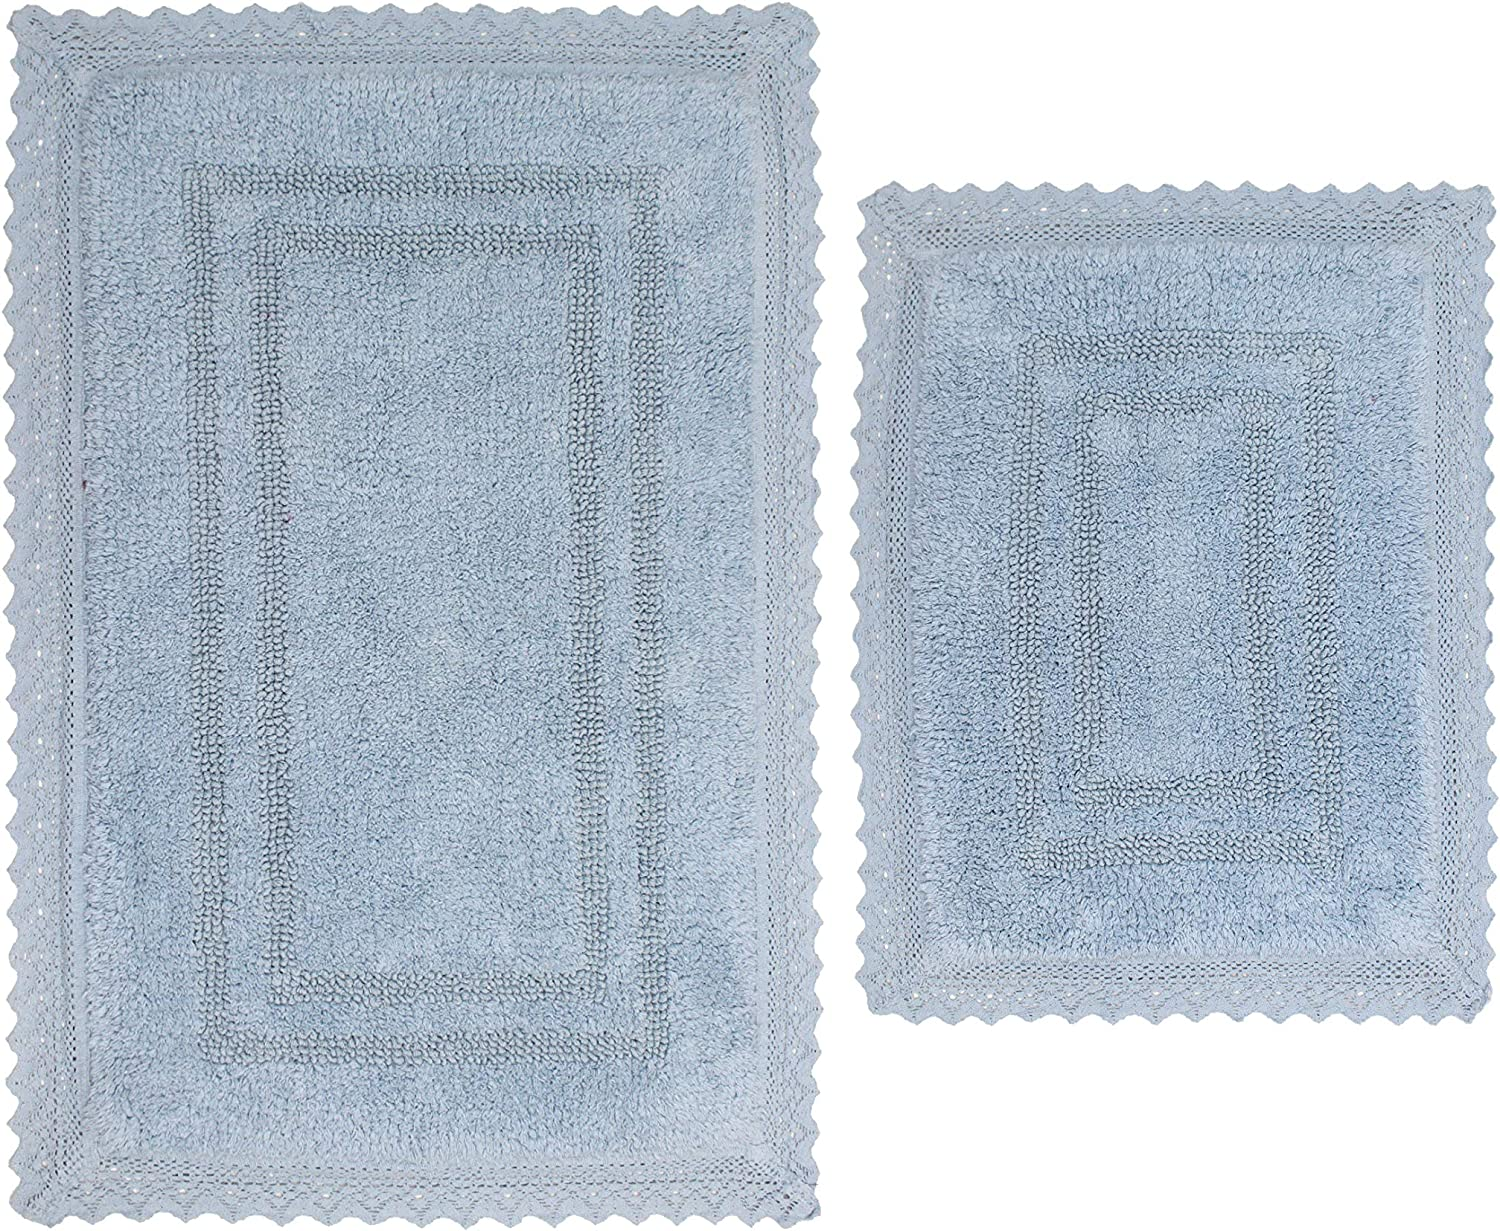 "Home Weavers Opulent Bathmat Collection Absorbent Cotton Soft Reversible 2 Piece Bath Rug Set, Machine Washable, 17""x24"", 21""x34"", Blue"